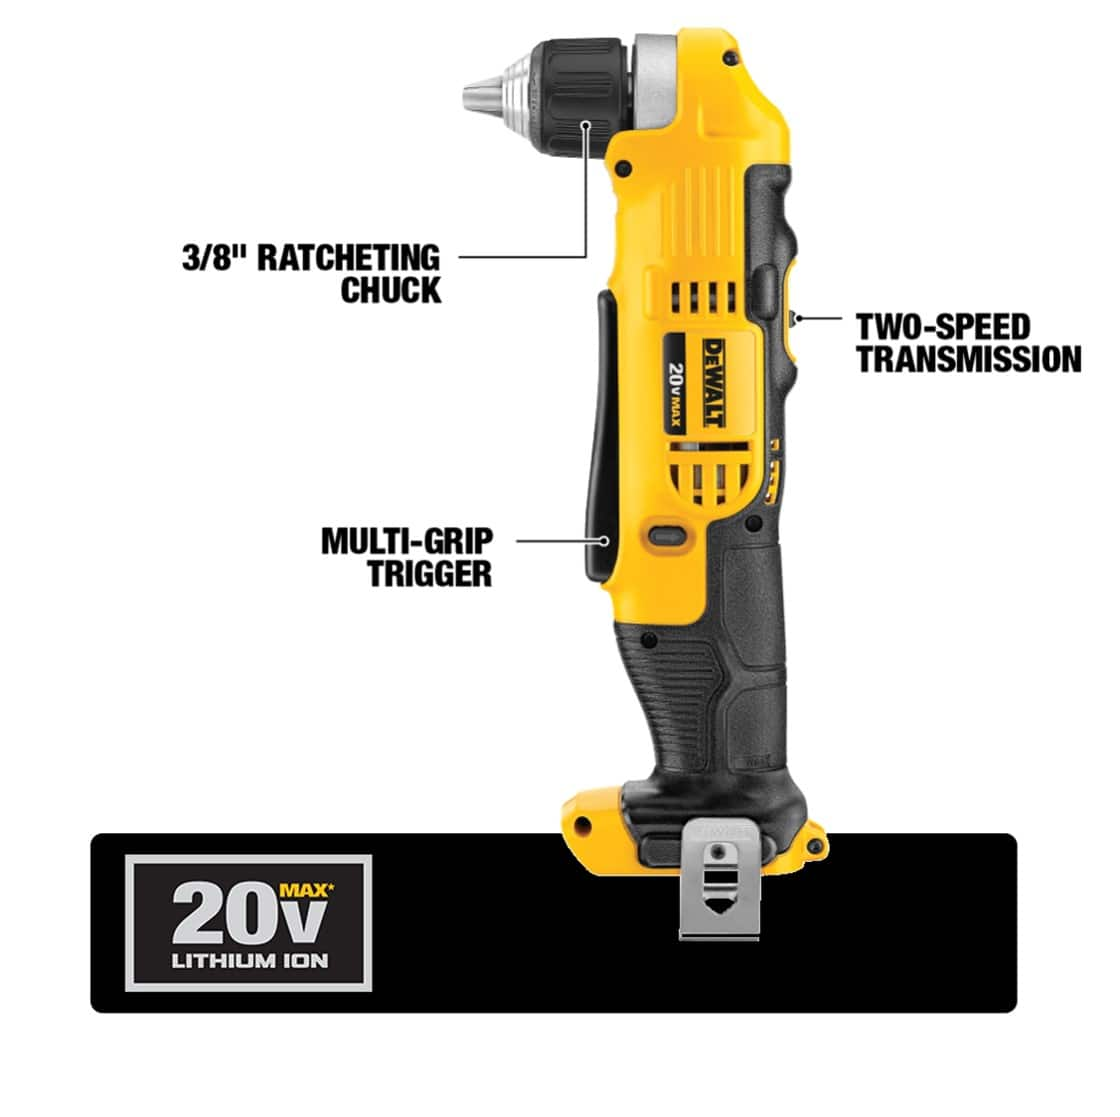 The DCD740 3/8 in. Cordless Right Angle Drill has a deep hex chuck and has speeds of 0 to 650 and 0 to 2000 RPM.